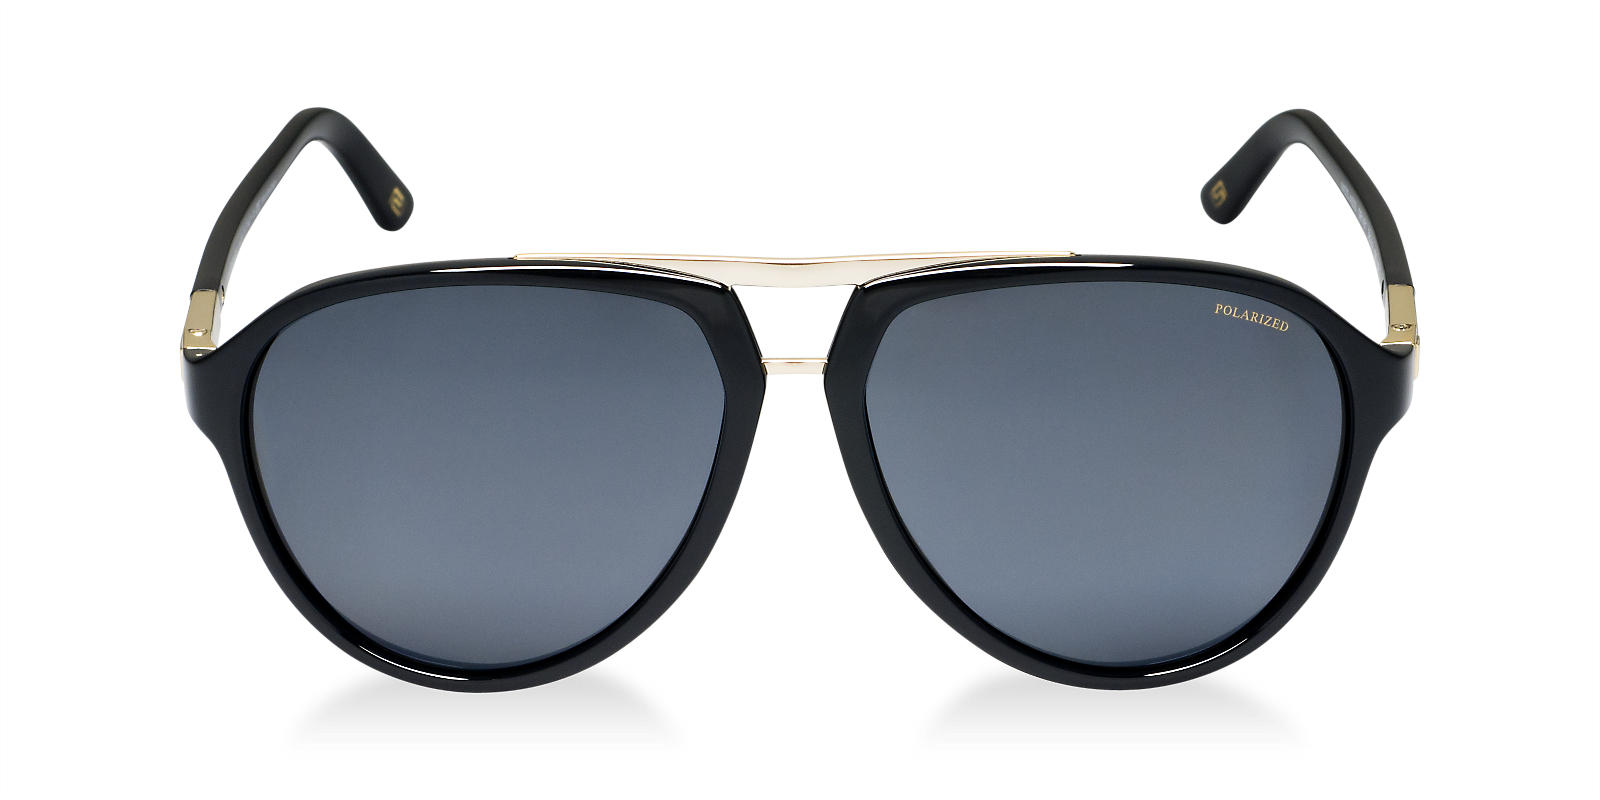 Sunglasses Png Hd (+).